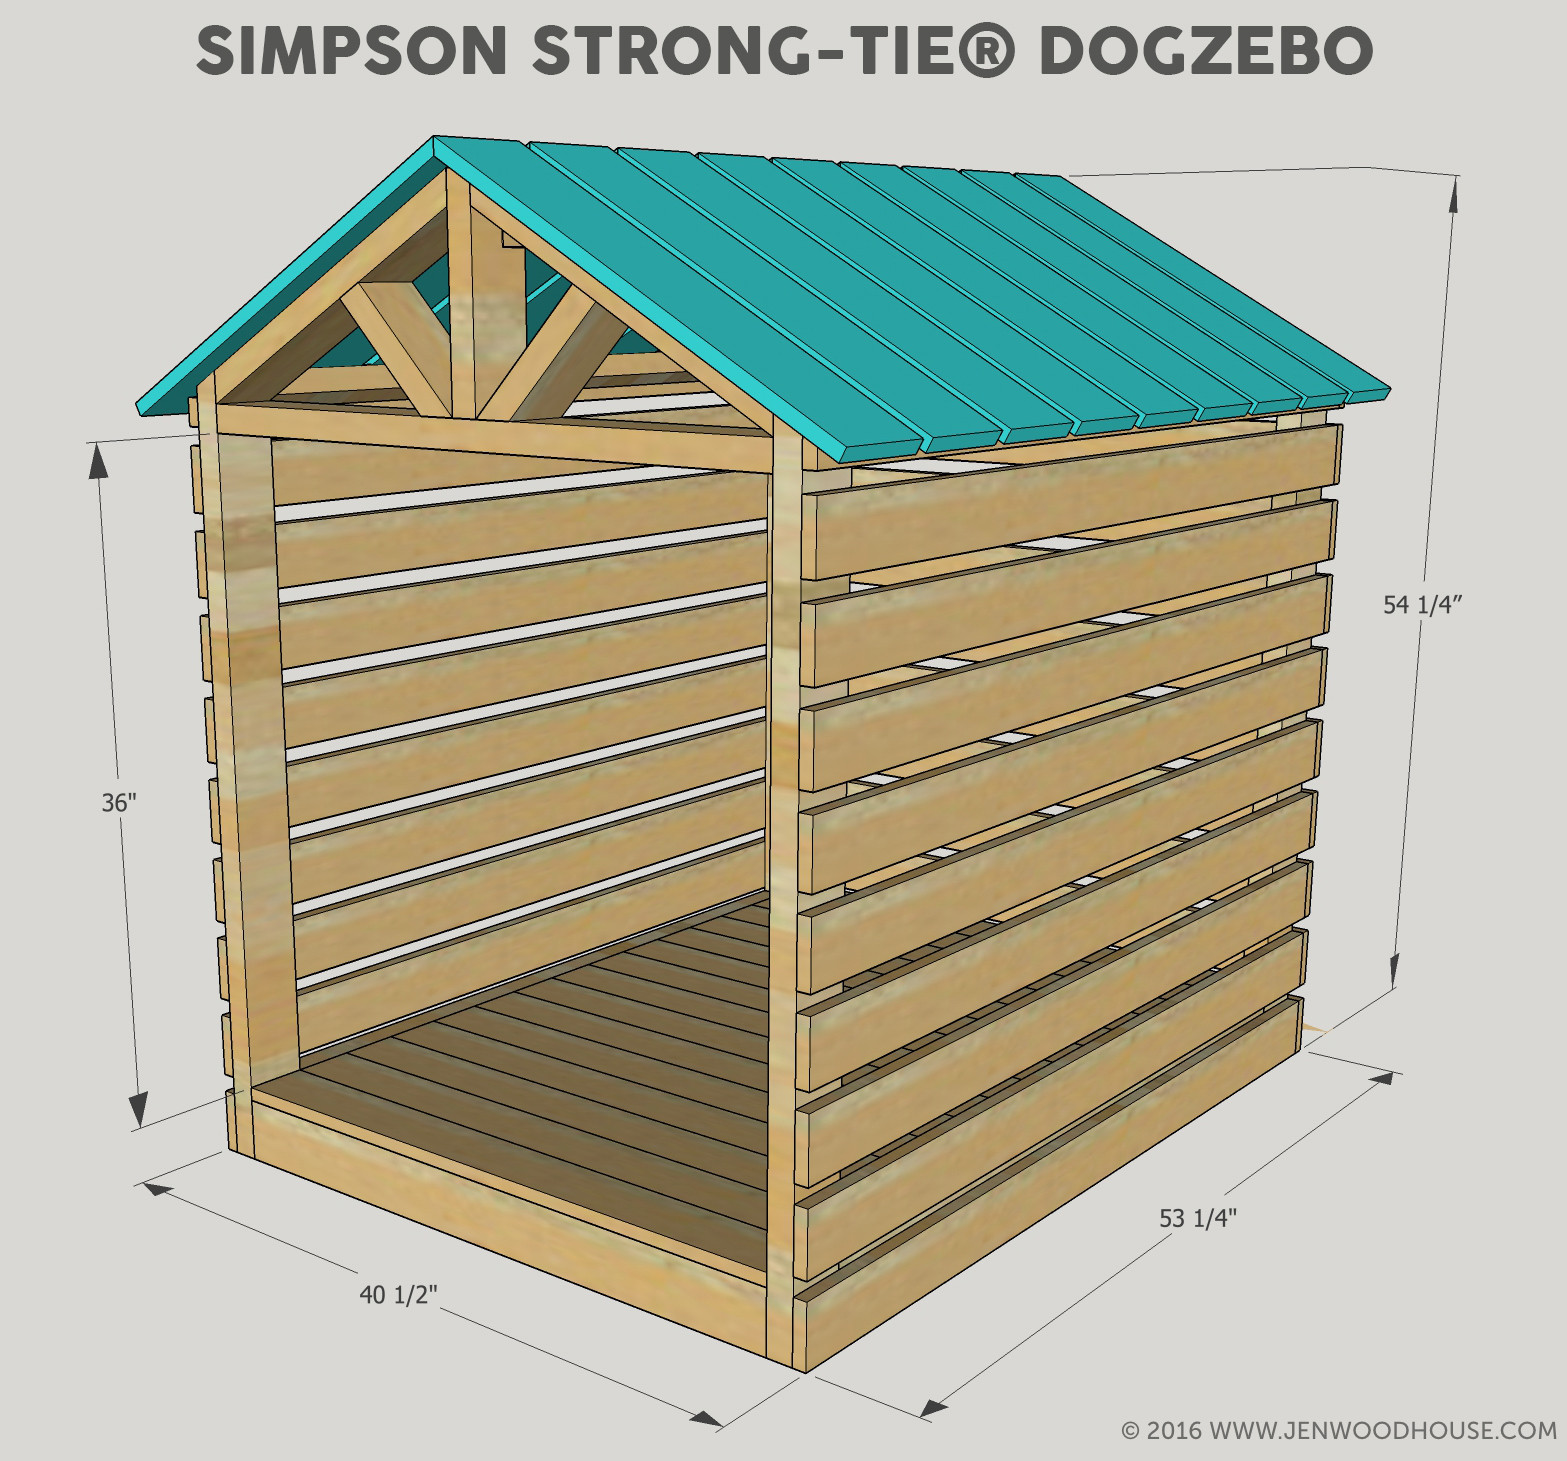 Best ideas about DIY Dog House Kits . Save or Pin DIY Doghouse Gazebo Now.